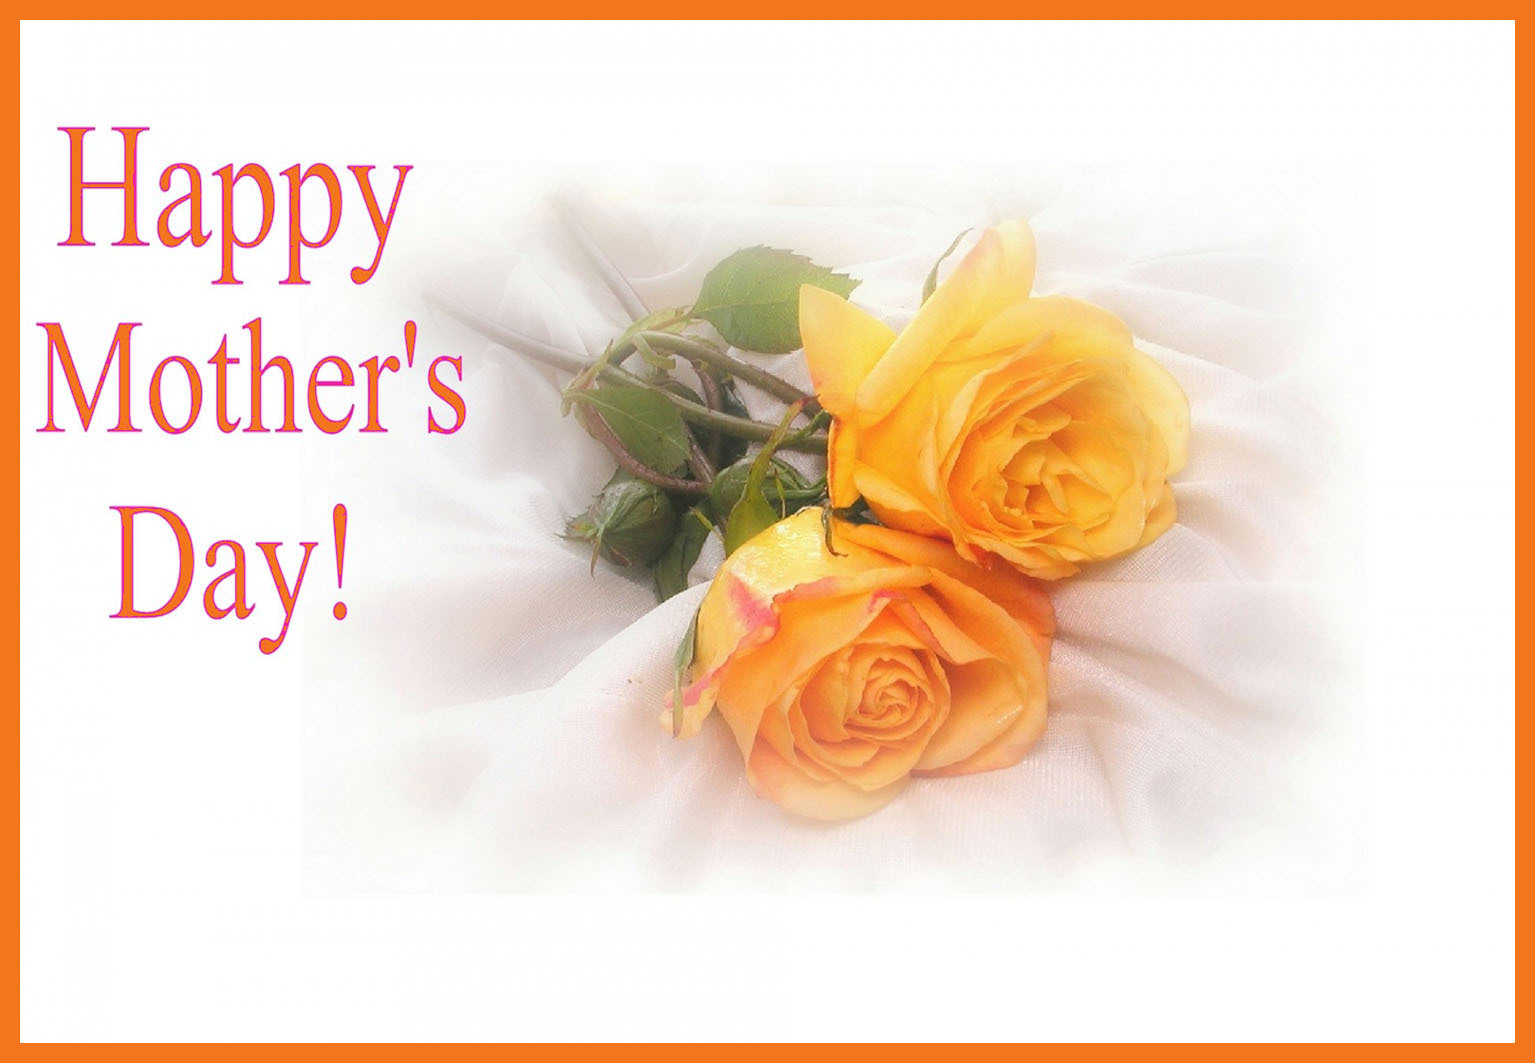 Mother's Day card with yellow roses